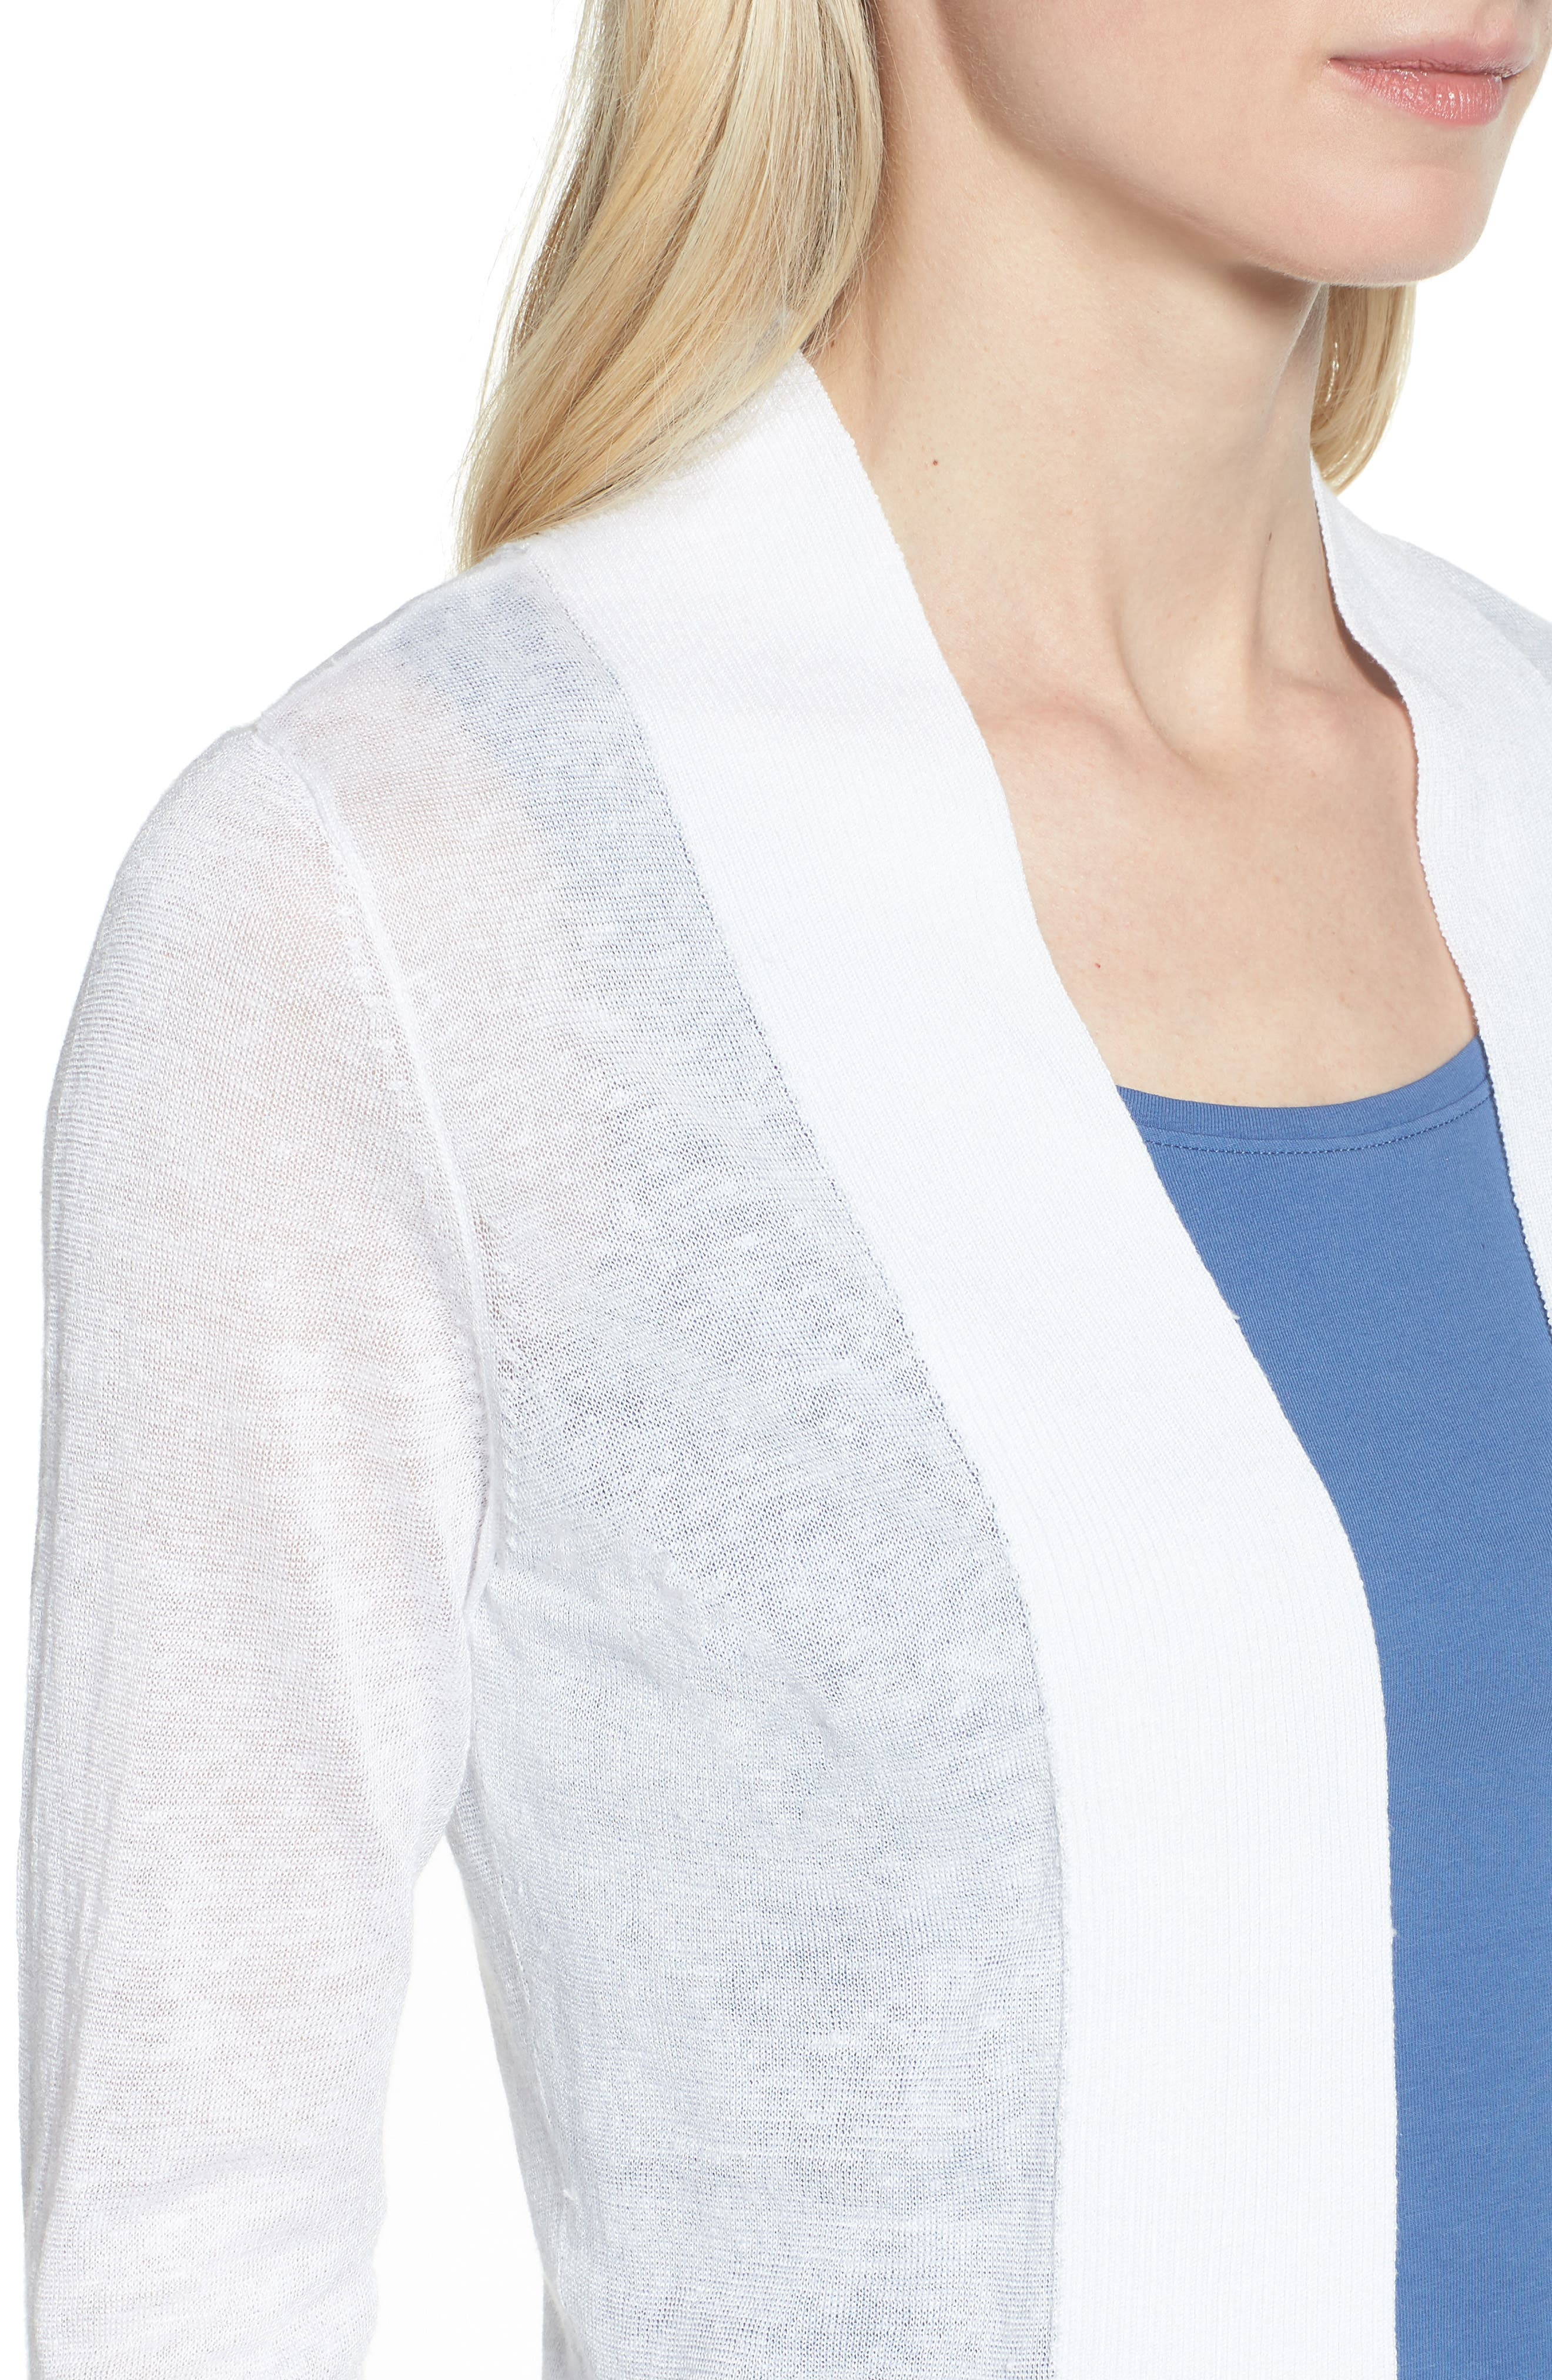 NIC + ZOE Daybreak Open Front Cardigan,                             Alternate thumbnail 4, color,                             123